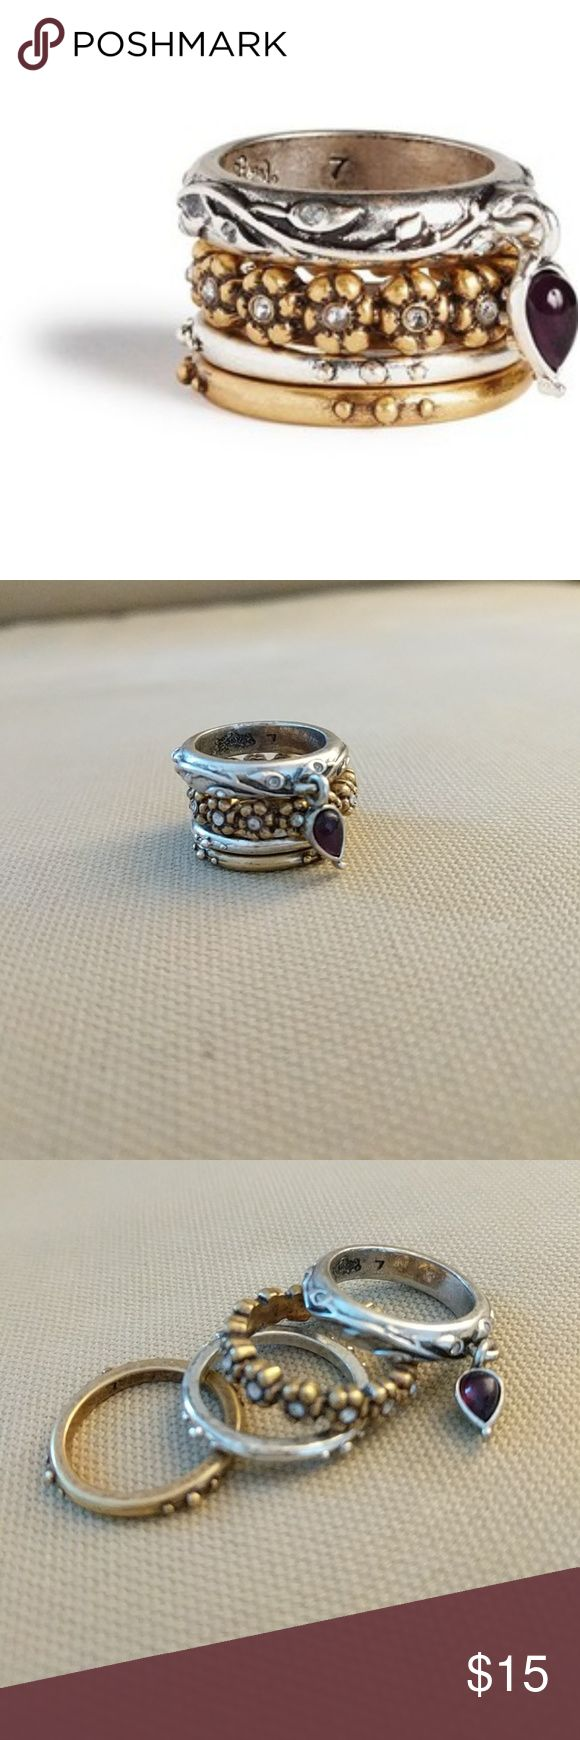 Lucky Brand Two Tone Stackable Ring Gold and silver tone, stackable Lucky Brand ring with floral design and garnet charm. Can be worn separately or together. Size 7, used. Lucky Brand Jewelry Rings